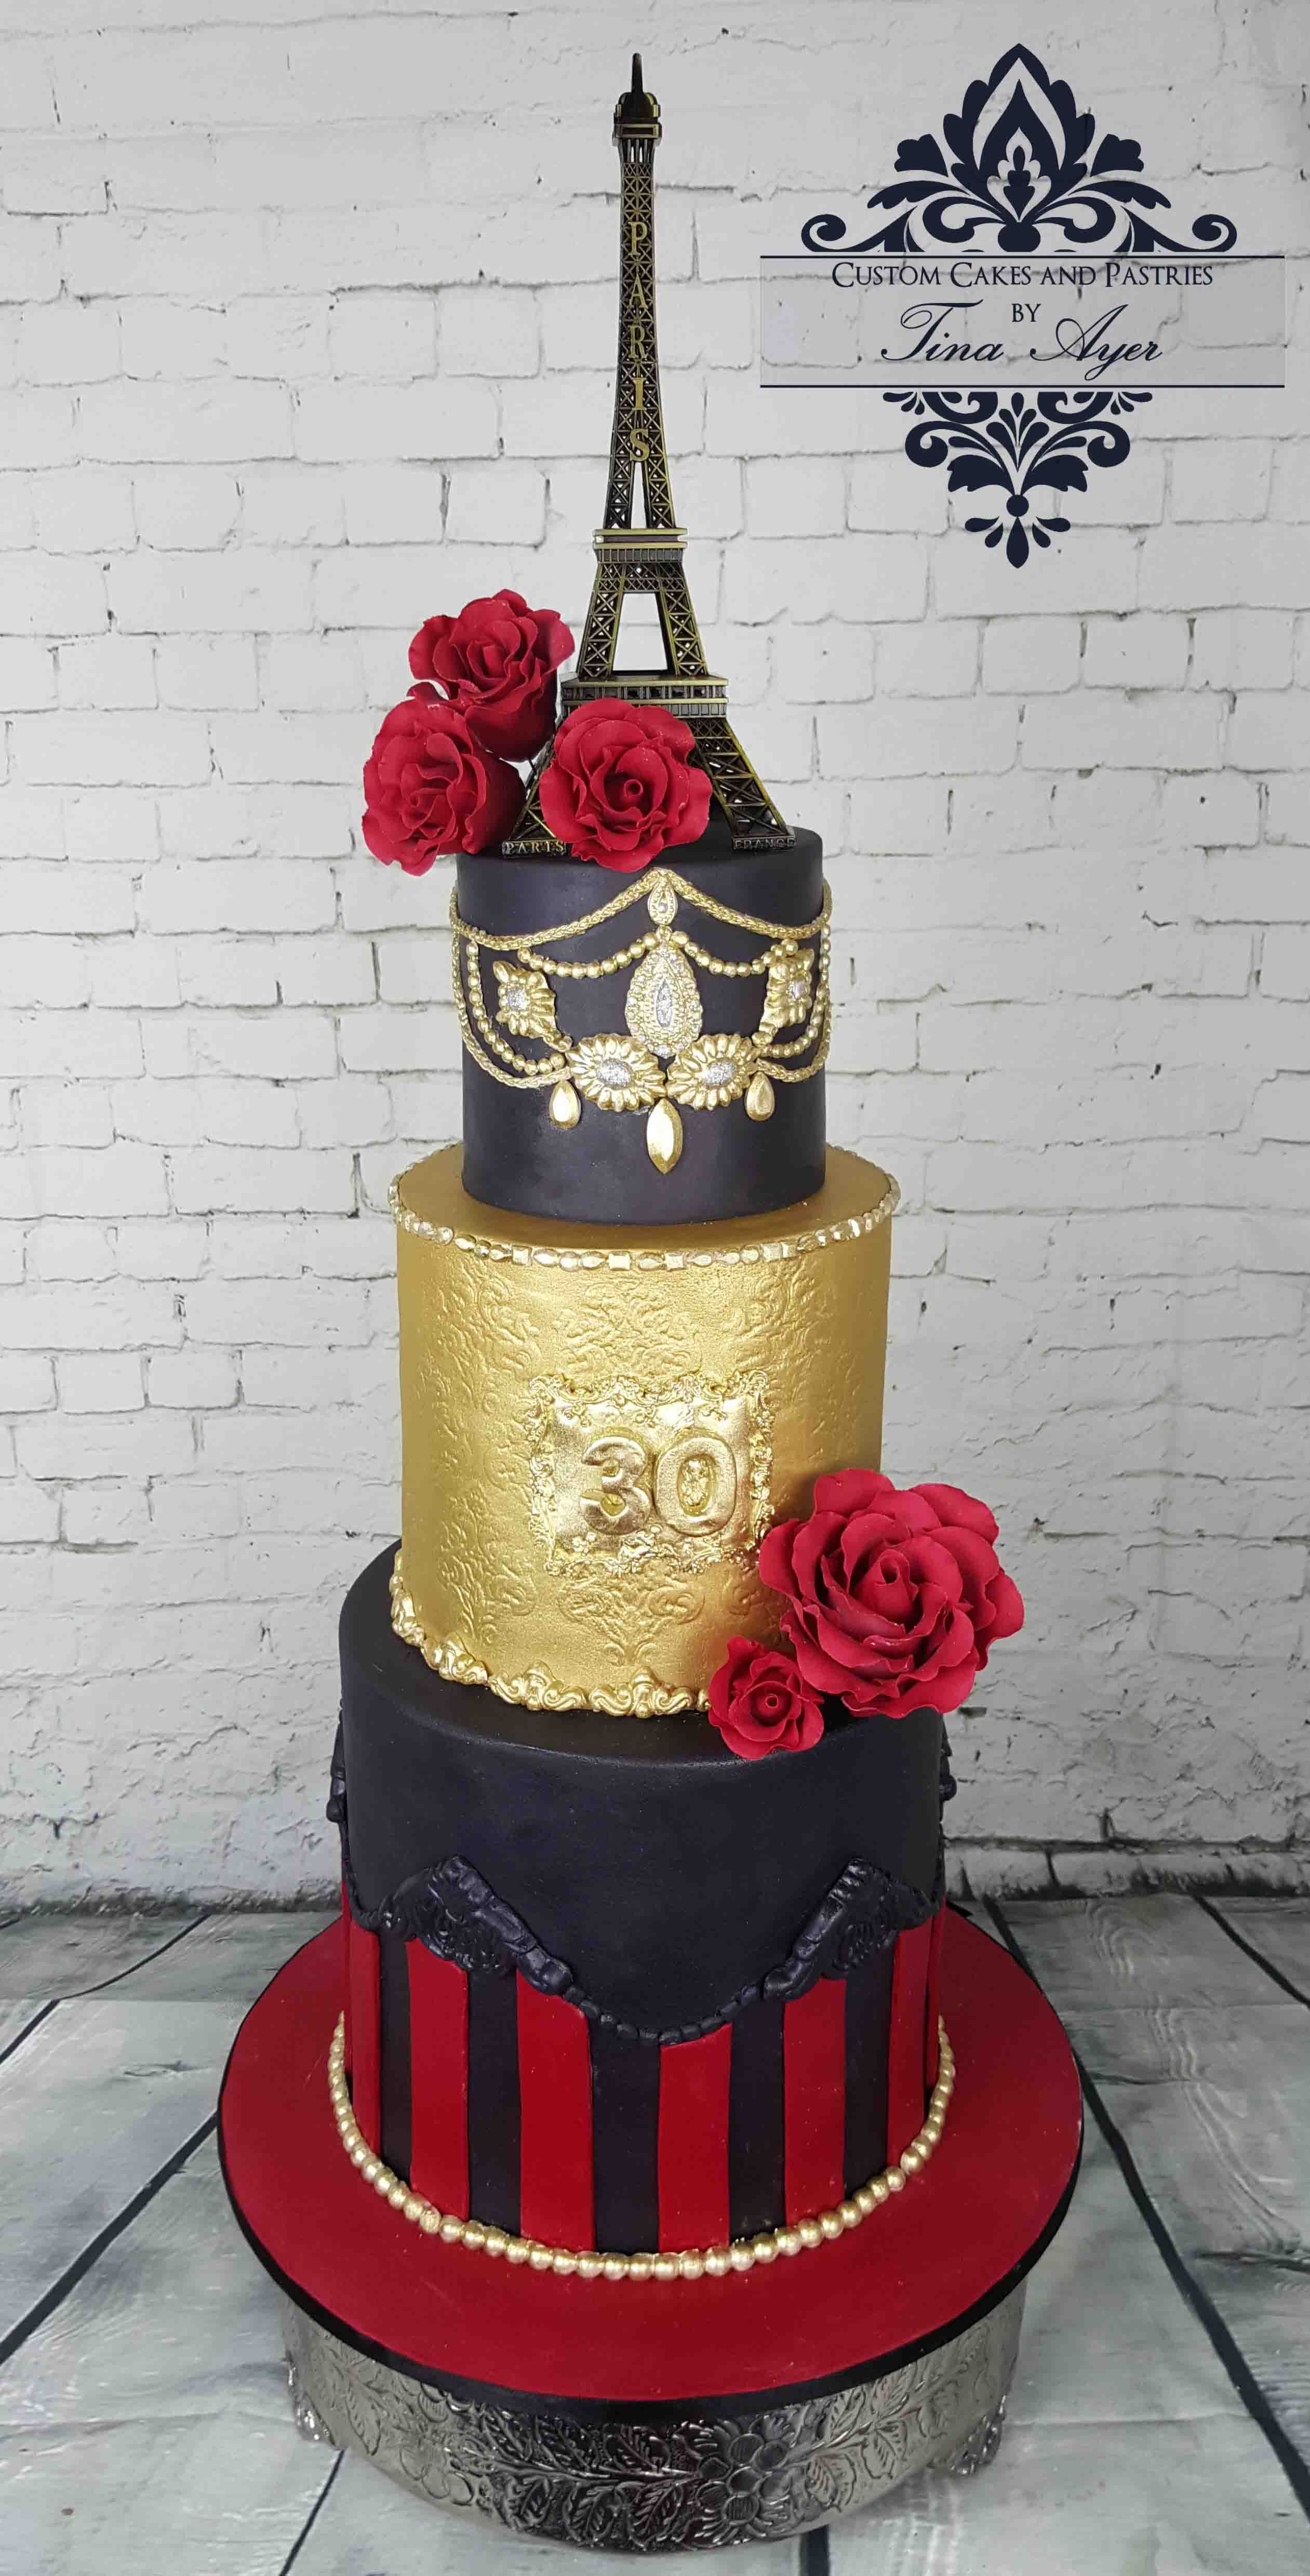 I Need Ideas For Decorating My Living Room: Moulin Rogue Themed Cake. Paris, Parisian Party. Red